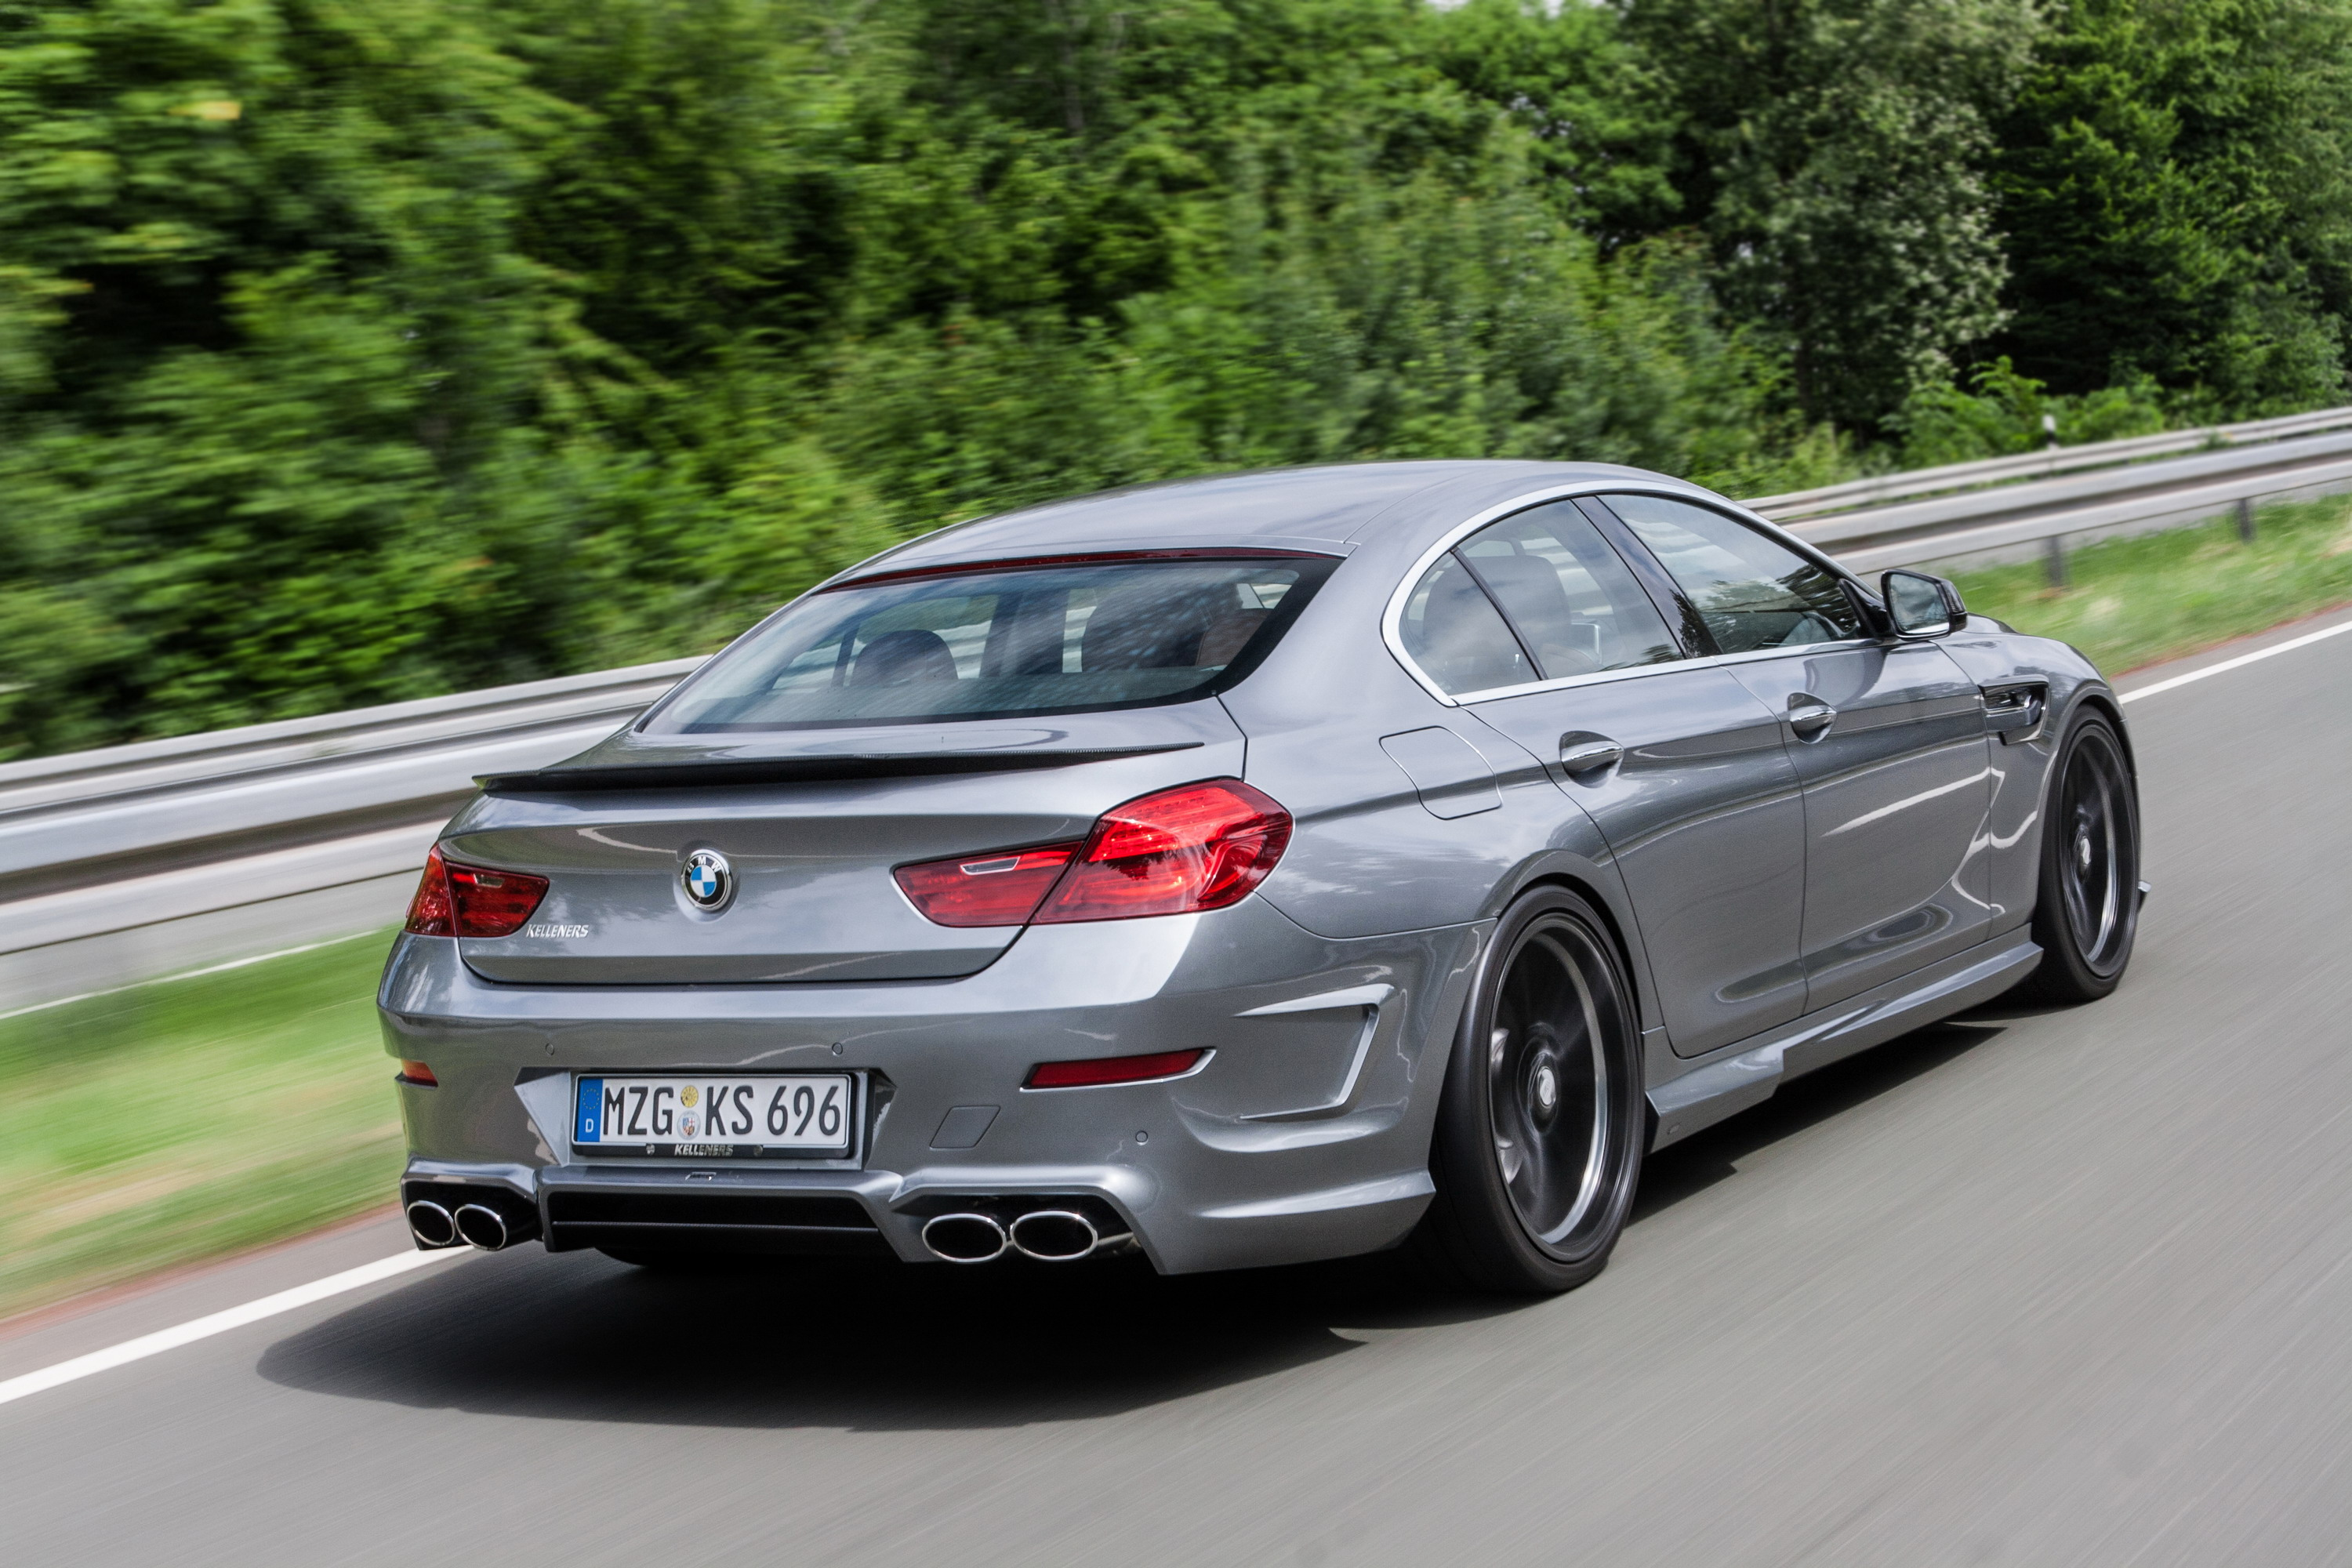 2014 bmw 6 series gran coupe by kelleners review top speed. Black Bedroom Furniture Sets. Home Design Ideas